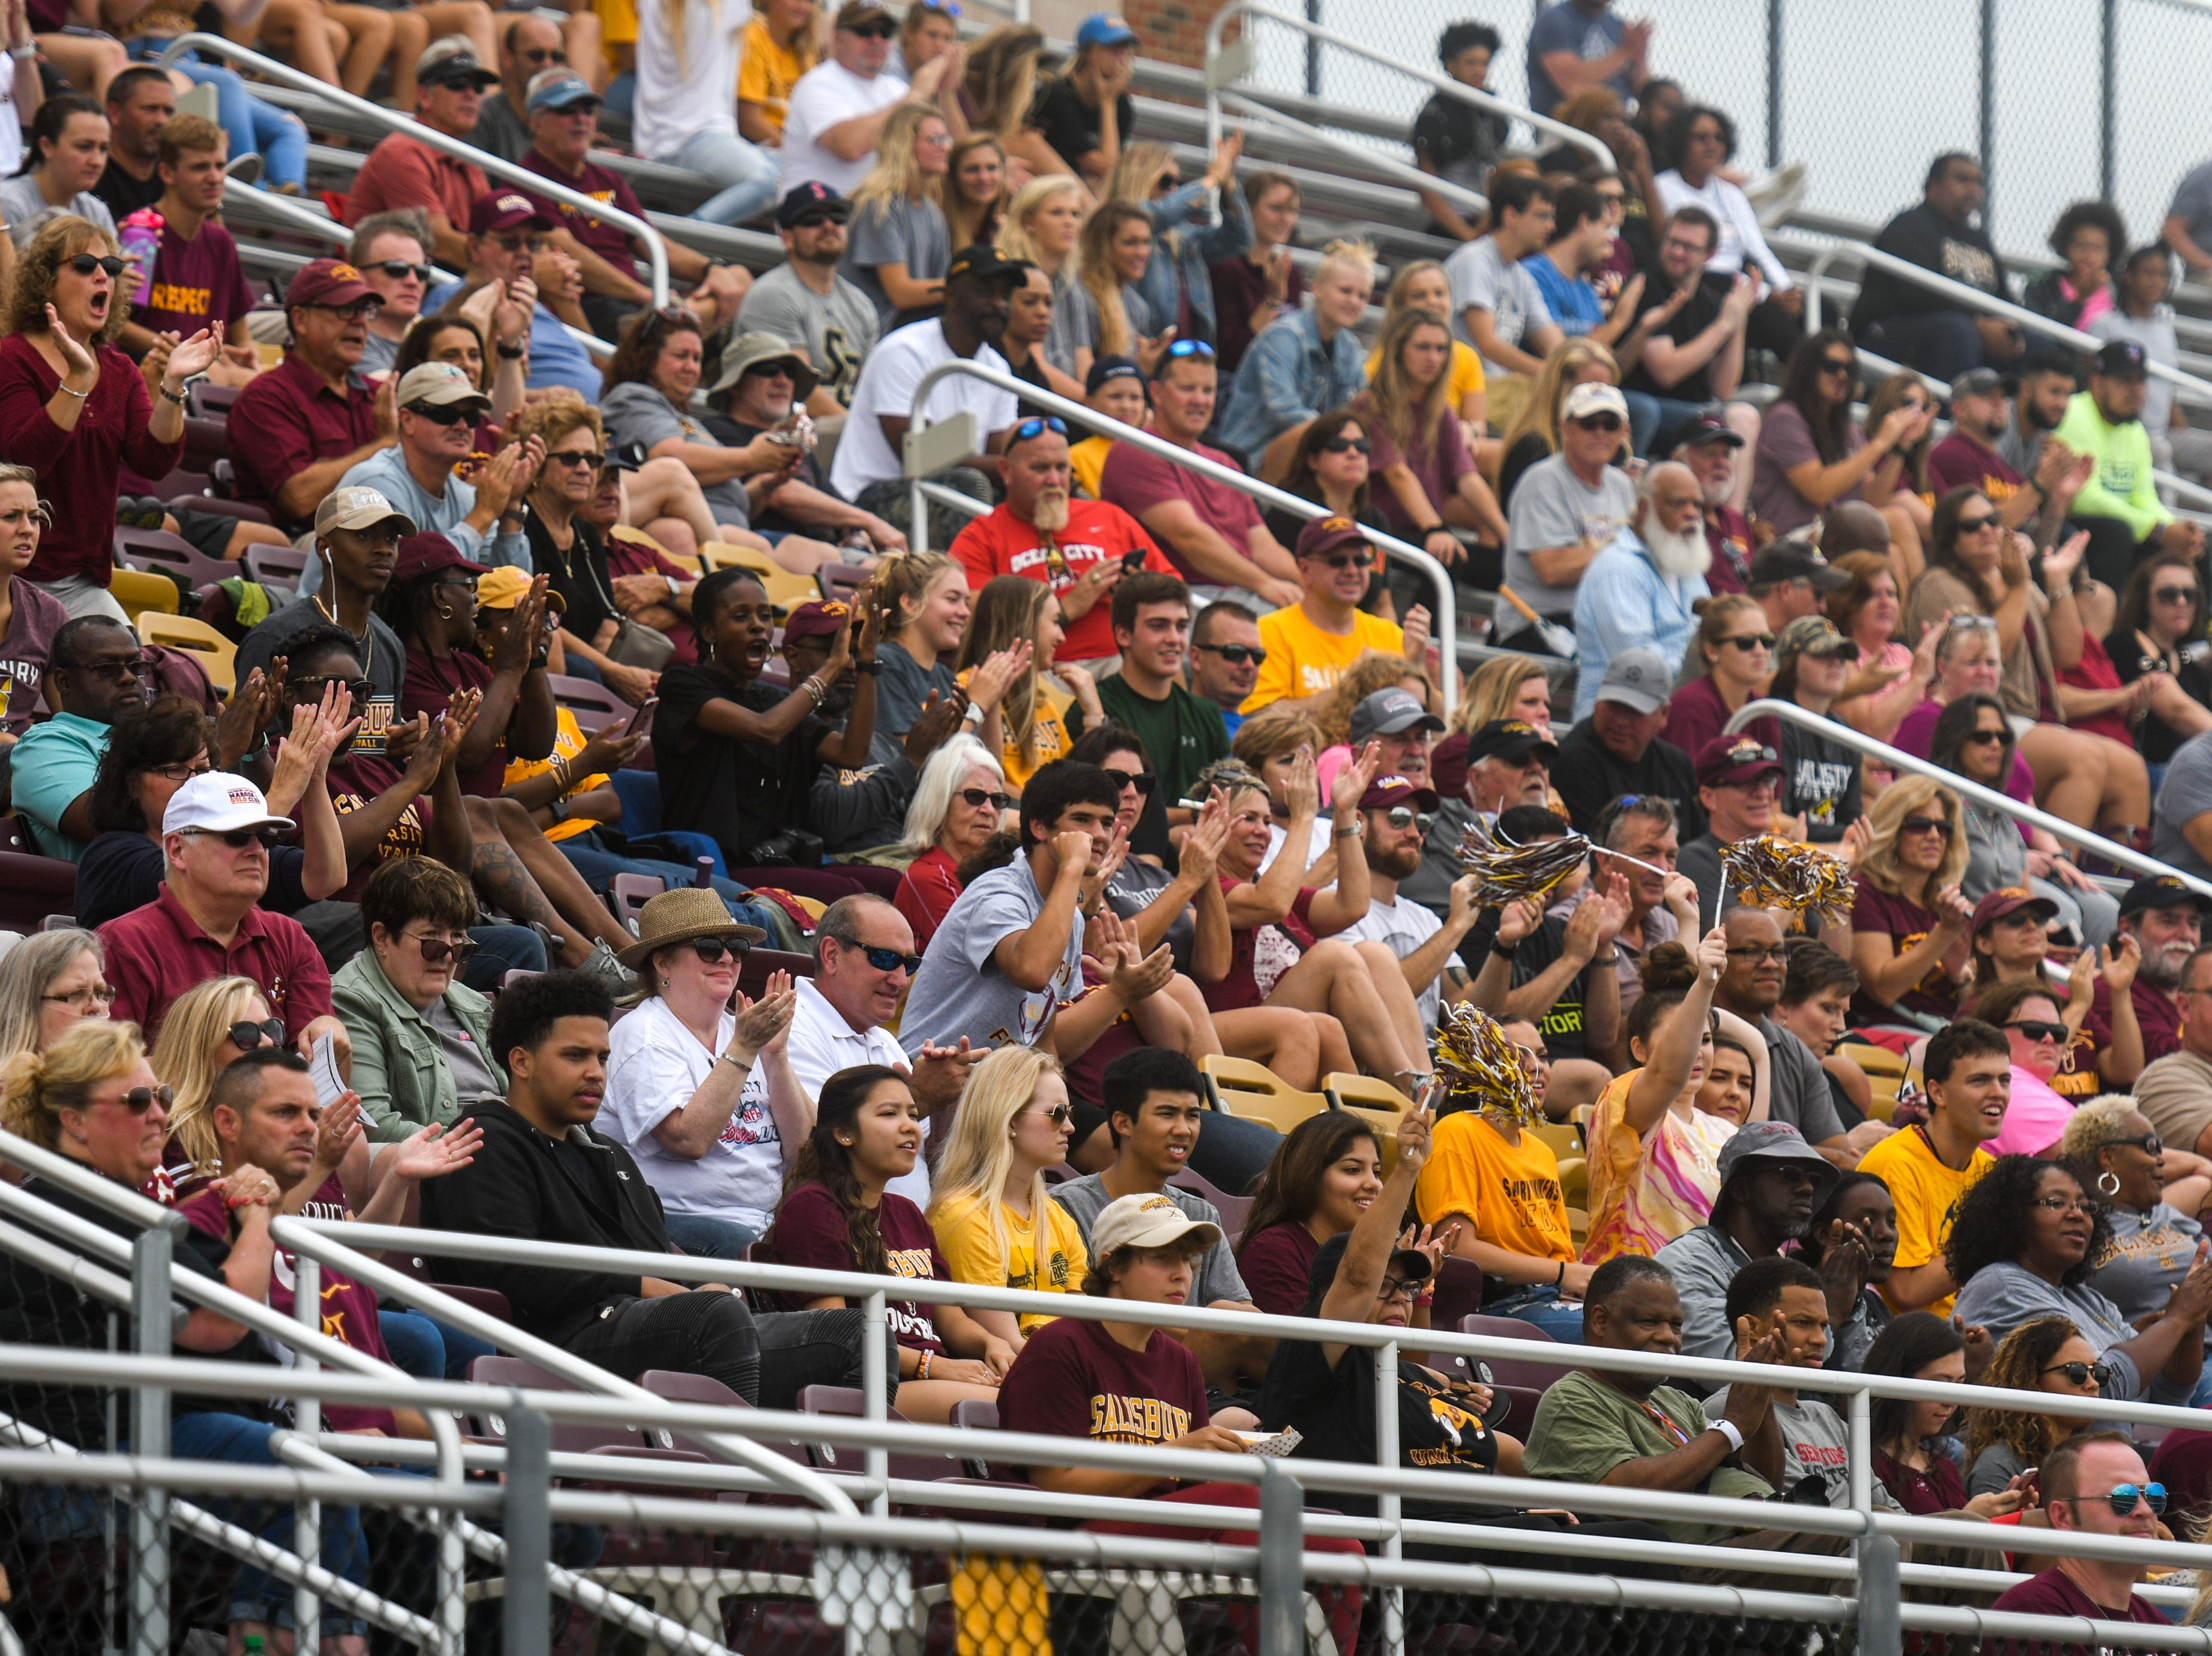 The Salisbury University crowd cheers after a touchdown against Kean on Saturday, Sept 15, 2018 at Seagull Stadium.